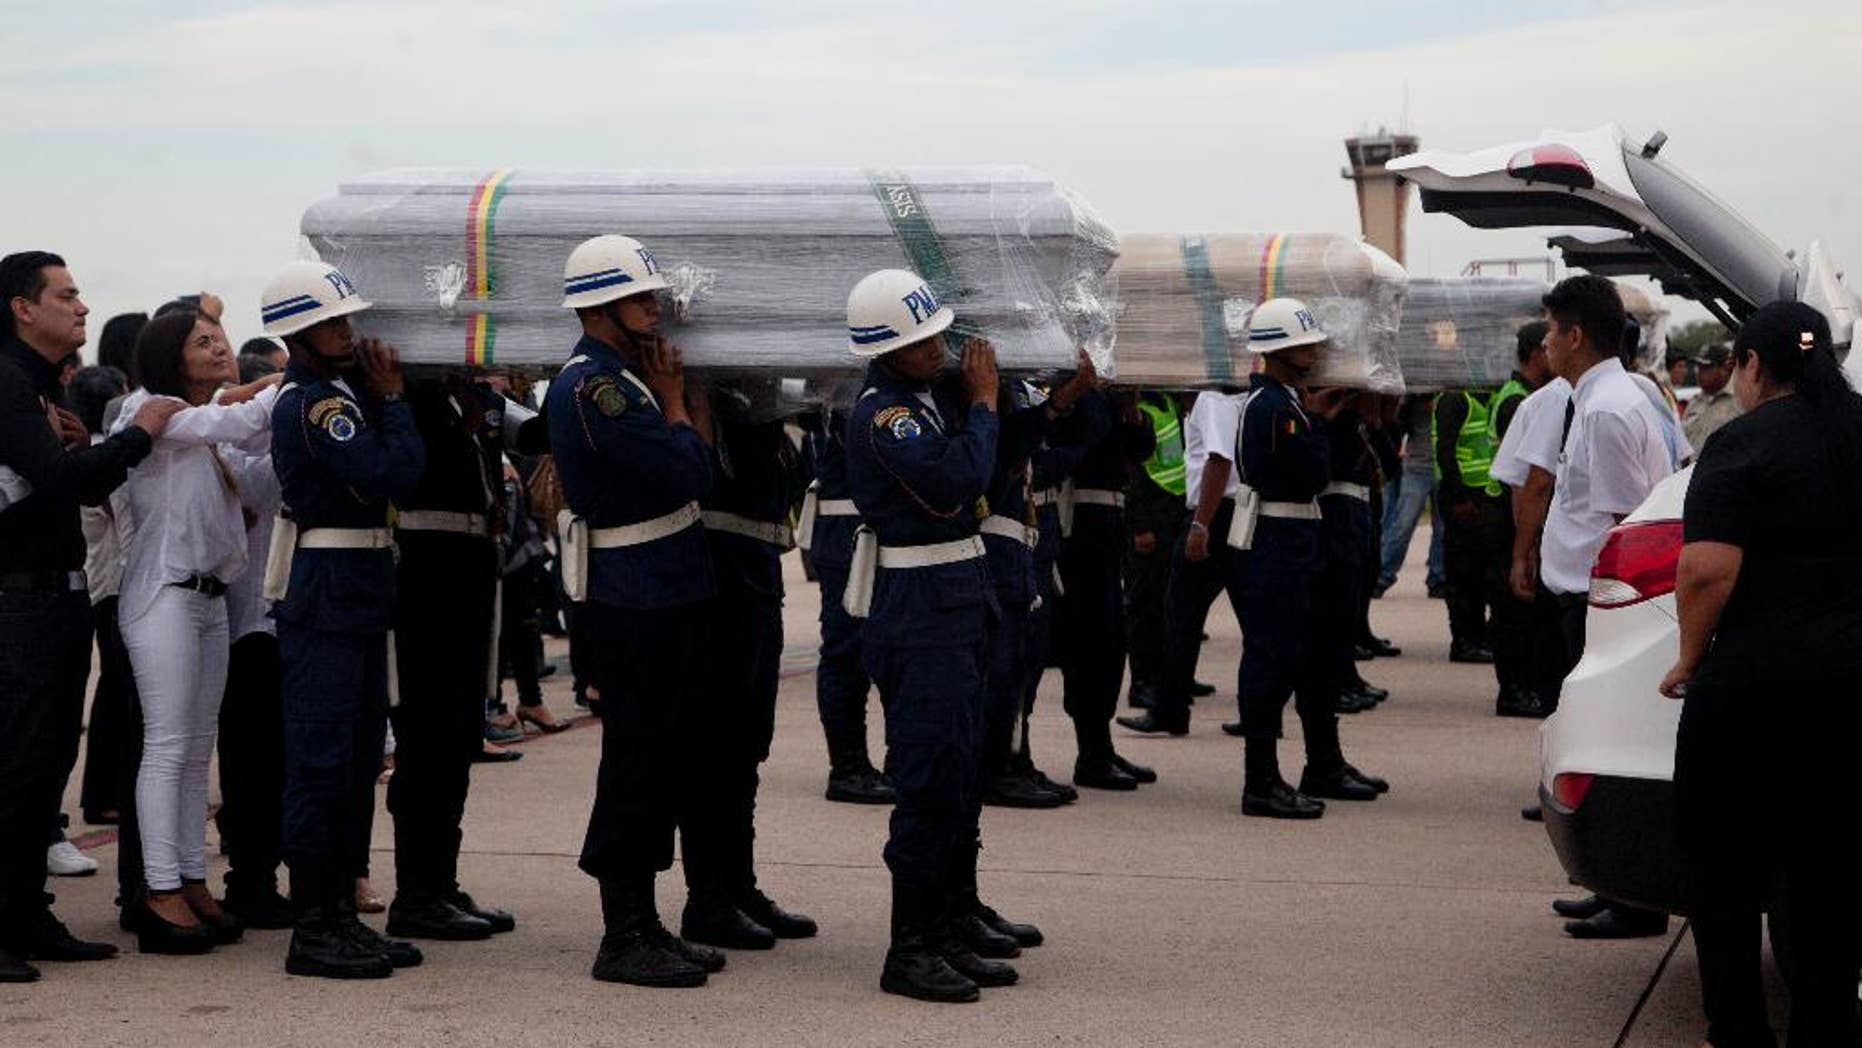 "Coffins carrying LaMia flight crew members who died in a plane crash are carried by soldiers to a hearse at the Viru Viru airport in Santa Cruz, Bolivia, Friday, Dec. 2, 2016. Victims of this week's tragic air crash in the Andes were flown home Friday as Bolivia's president called for ""drastic measures"" against aviation officials who signed off on a flight plan that experts and even one of the charter airline's executives said should never have been attempted because of a possible fuel shortage. (AP Photo/Juan Karita)"